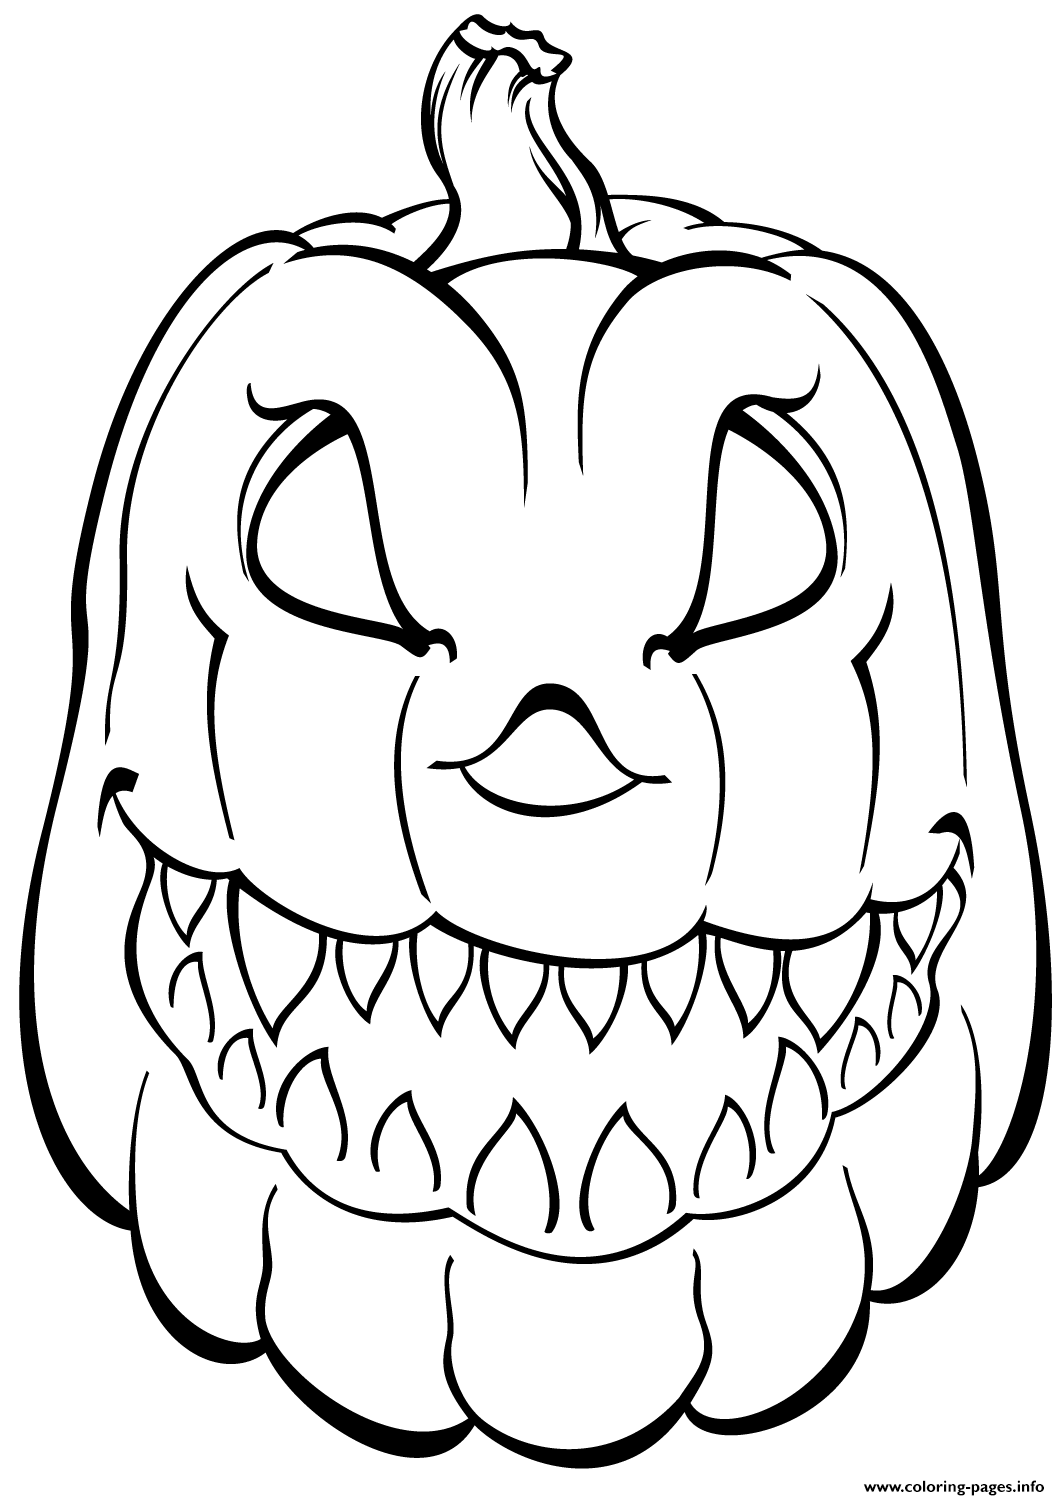 coloring pages of a pumpkin free printable pumpkin coloring pages for kids a pumpkin coloring of pages